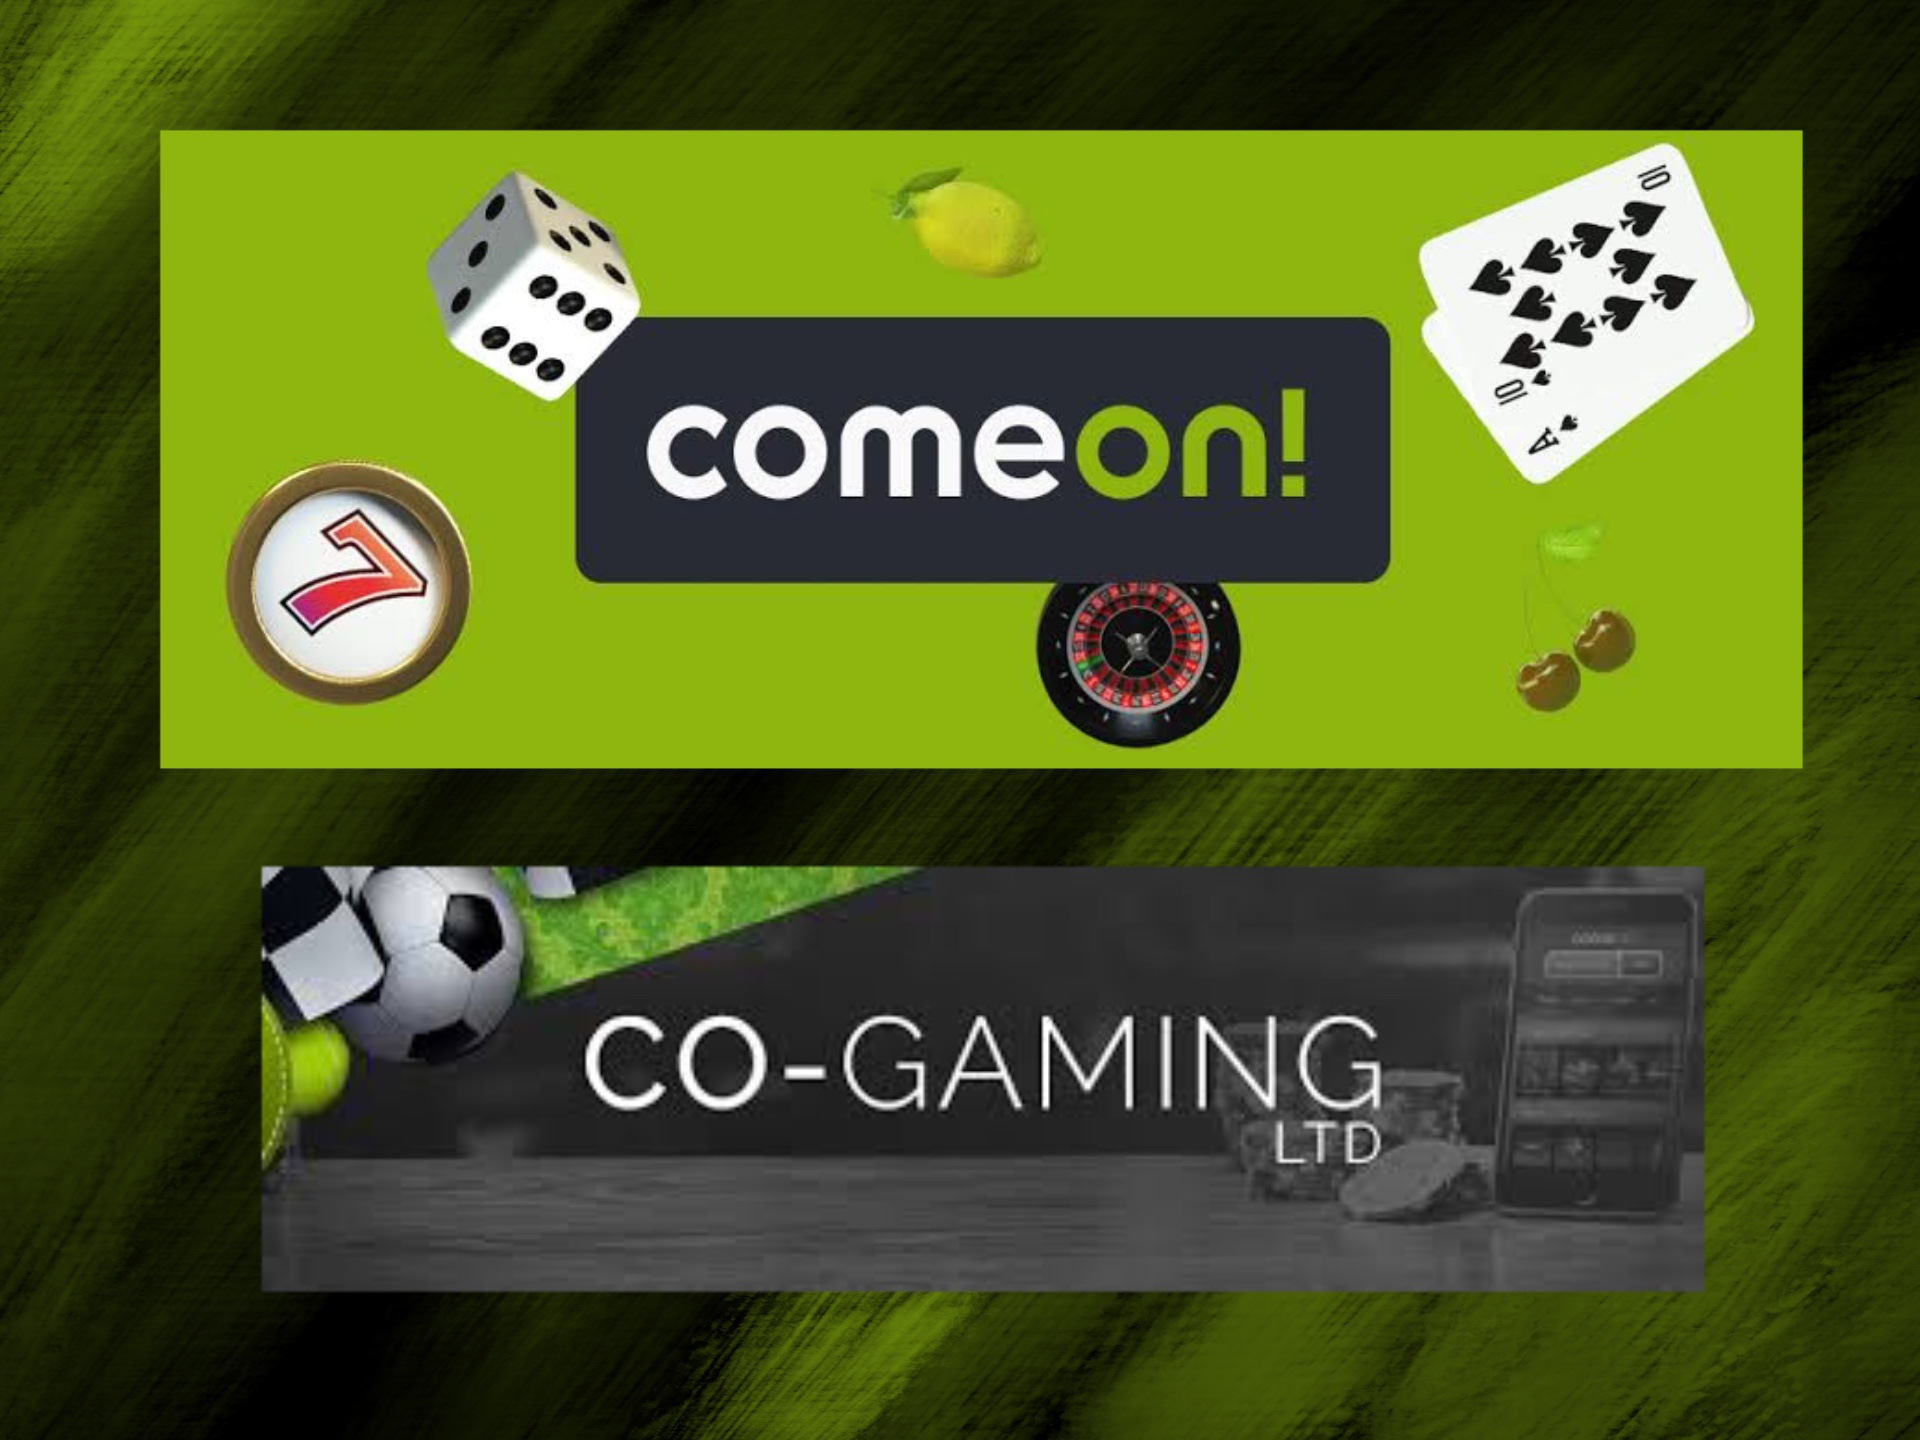 So you can be sure, that your personal data and money are totally under ComeOn bookie's protection.